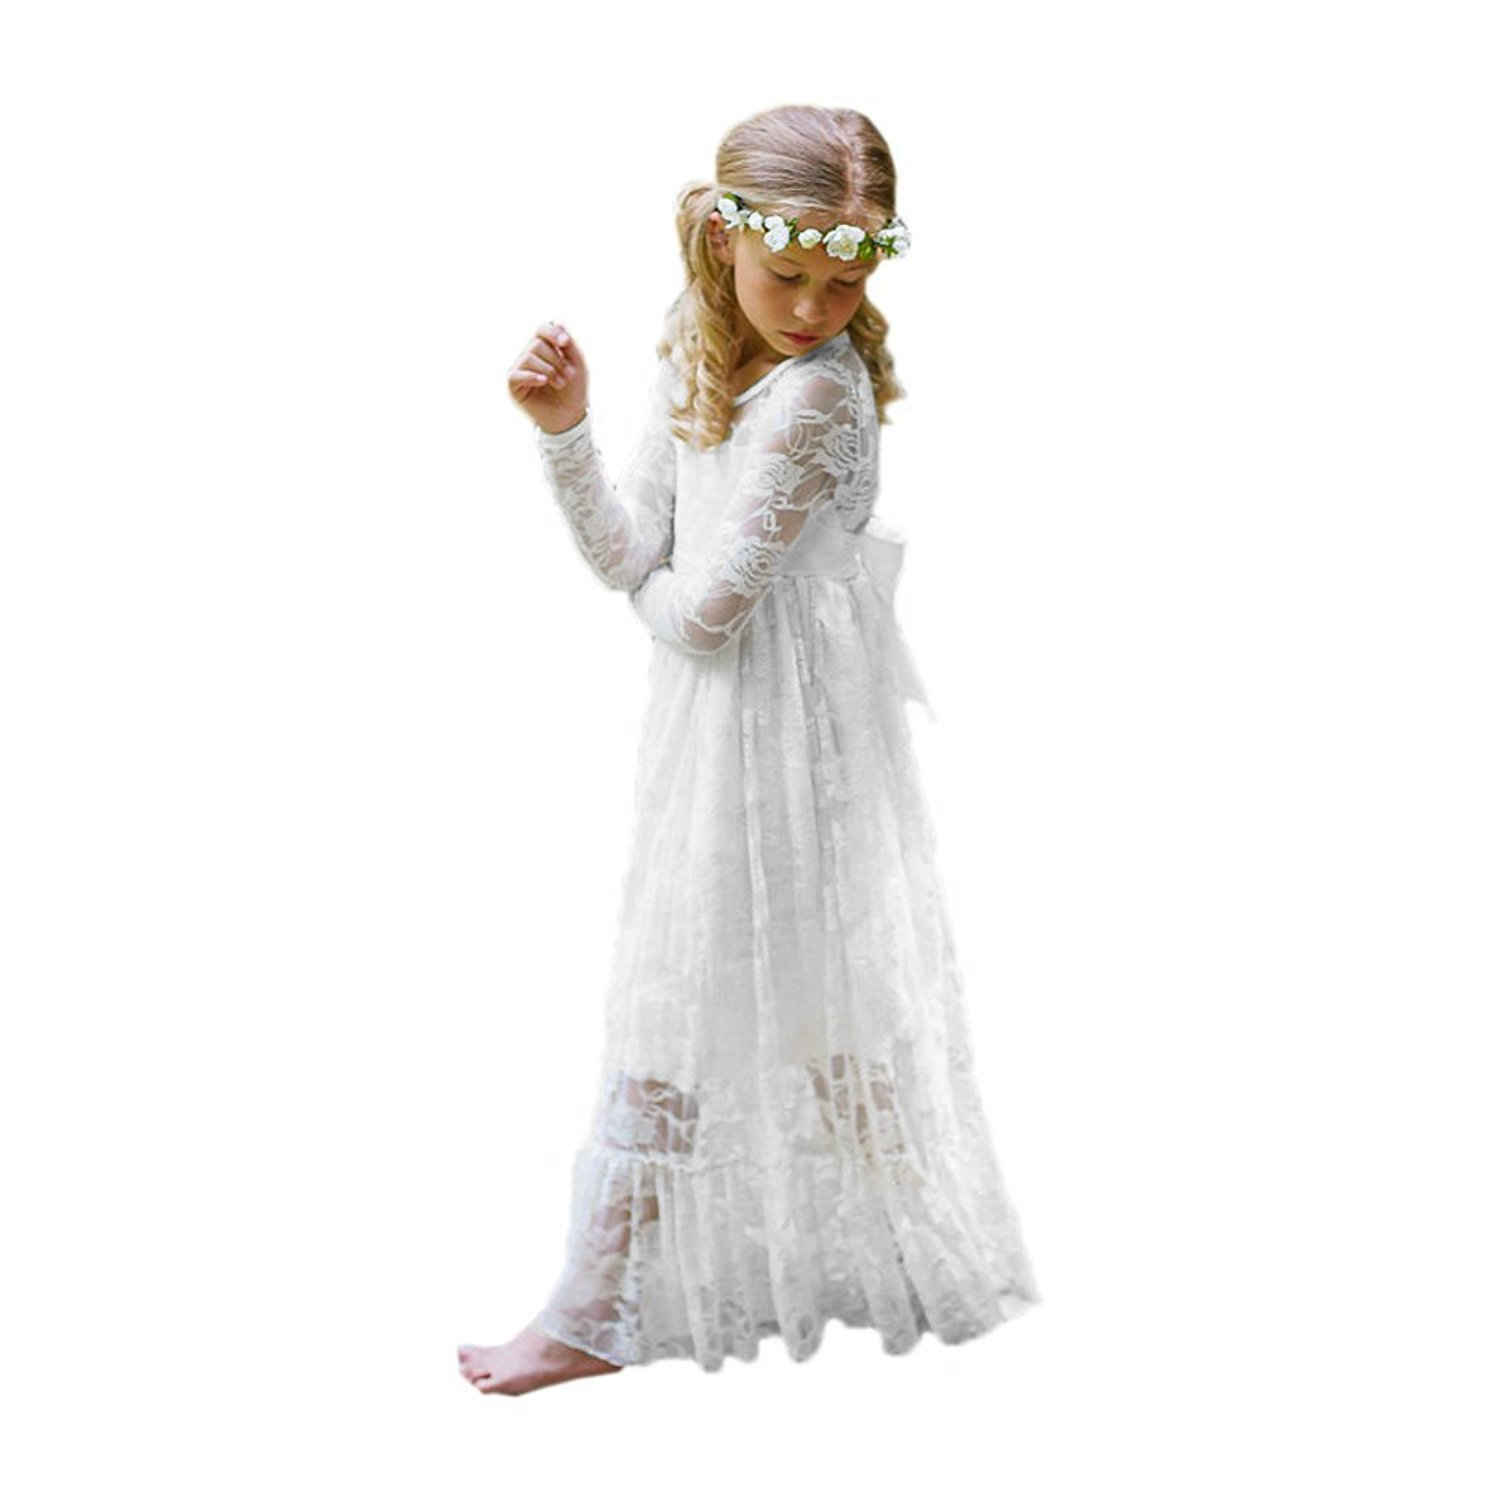 Carat Fancy Ivory White Lace Boho Rustic Flower Girl Dress 2-12 Year Old